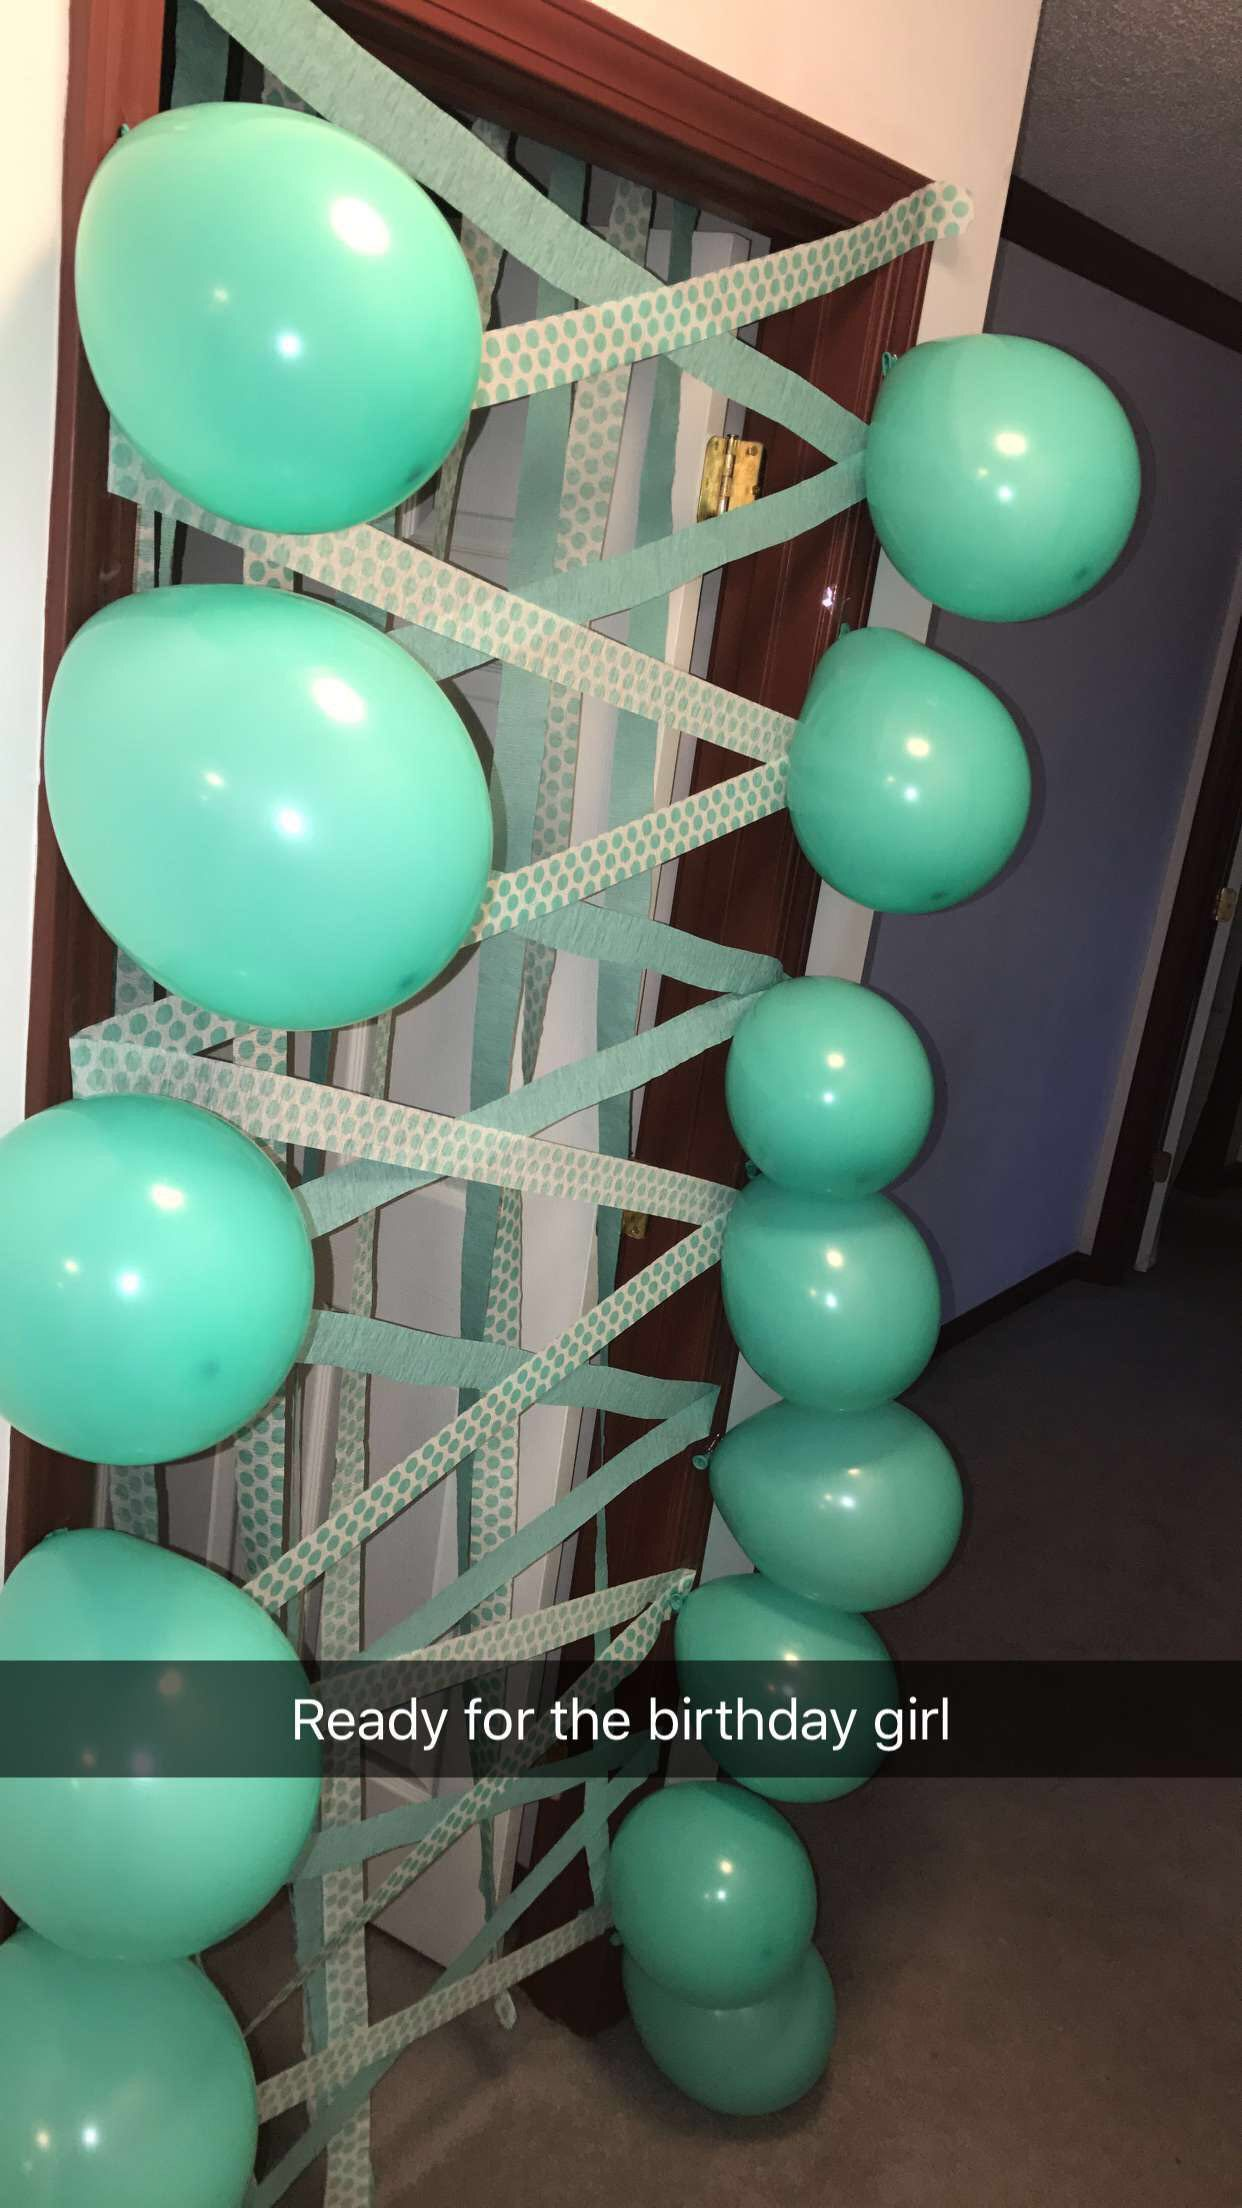 Surprise For The Birthday Girl Door Full Of Balloons And Streamers Decor